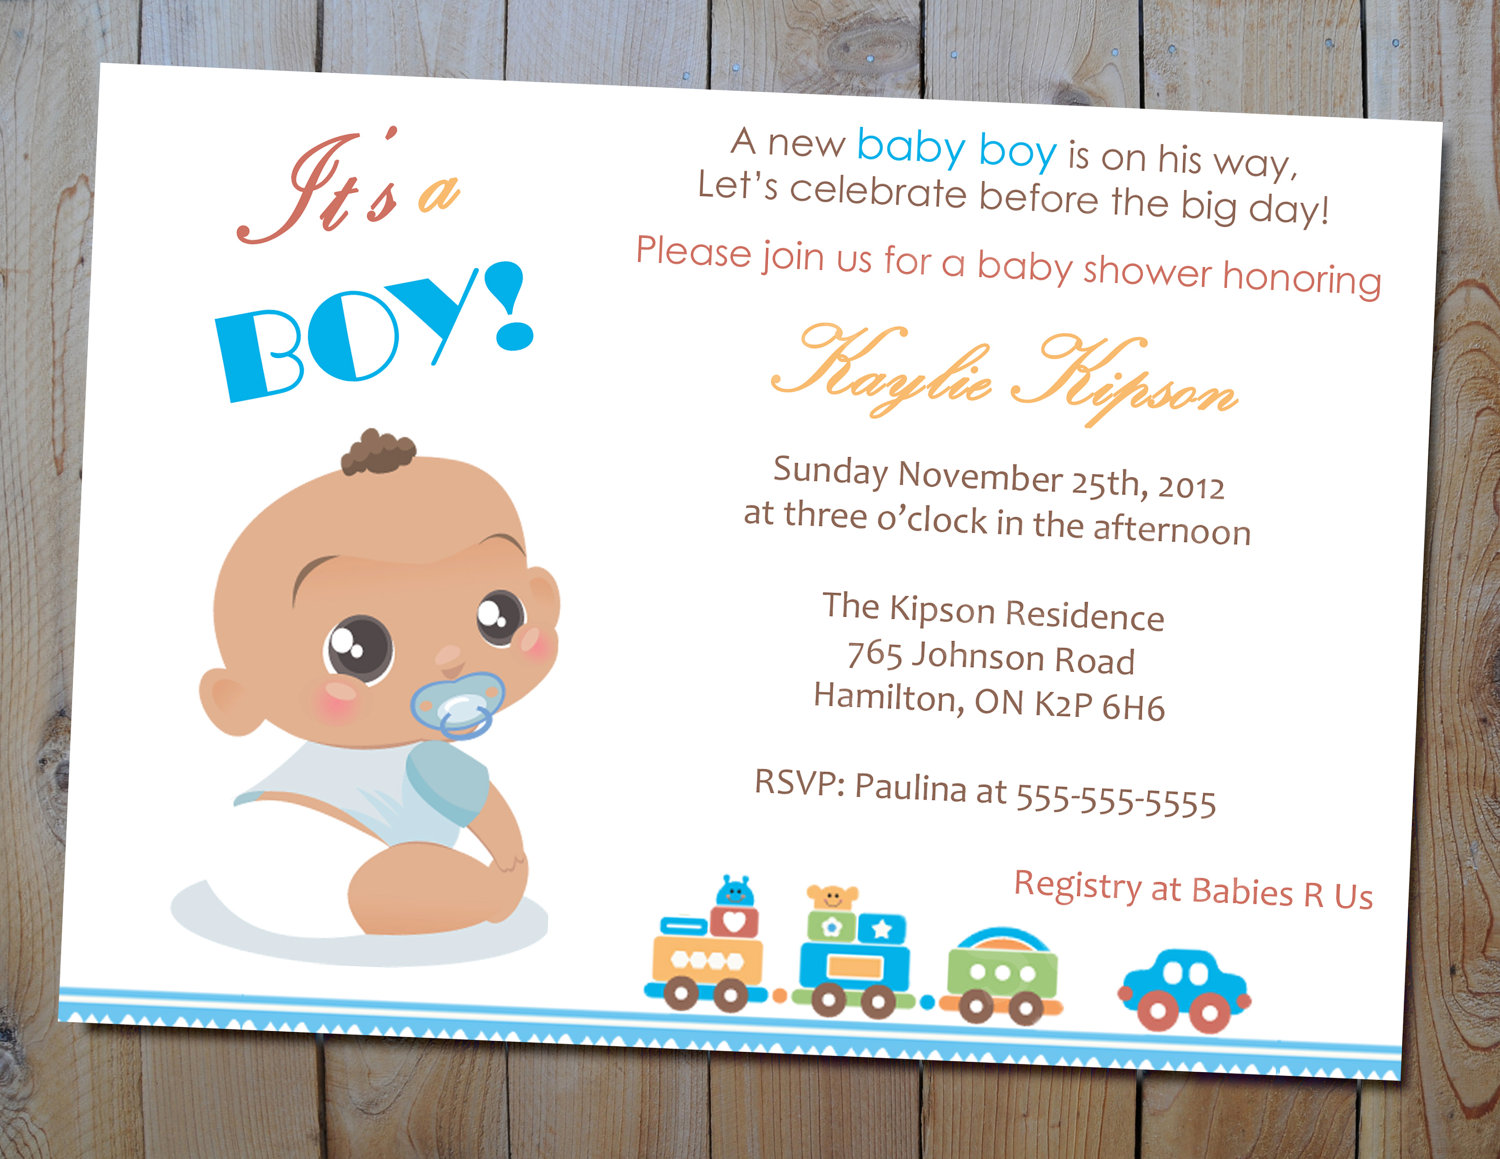 Full Size of Baby Shower:63+ Delightful Cheap Baby Shower Invitations Image Inspirations Cheap Baby Shower Invitations Baby Shower Party Themes Ideas Para Baby Shower Baby Shower Venues Nyc Baby Shower Gift Baskets Baby Shower Registry Baby Shower Wreath Make Cheap Baby Shower Invitations Ideas Invitations Card